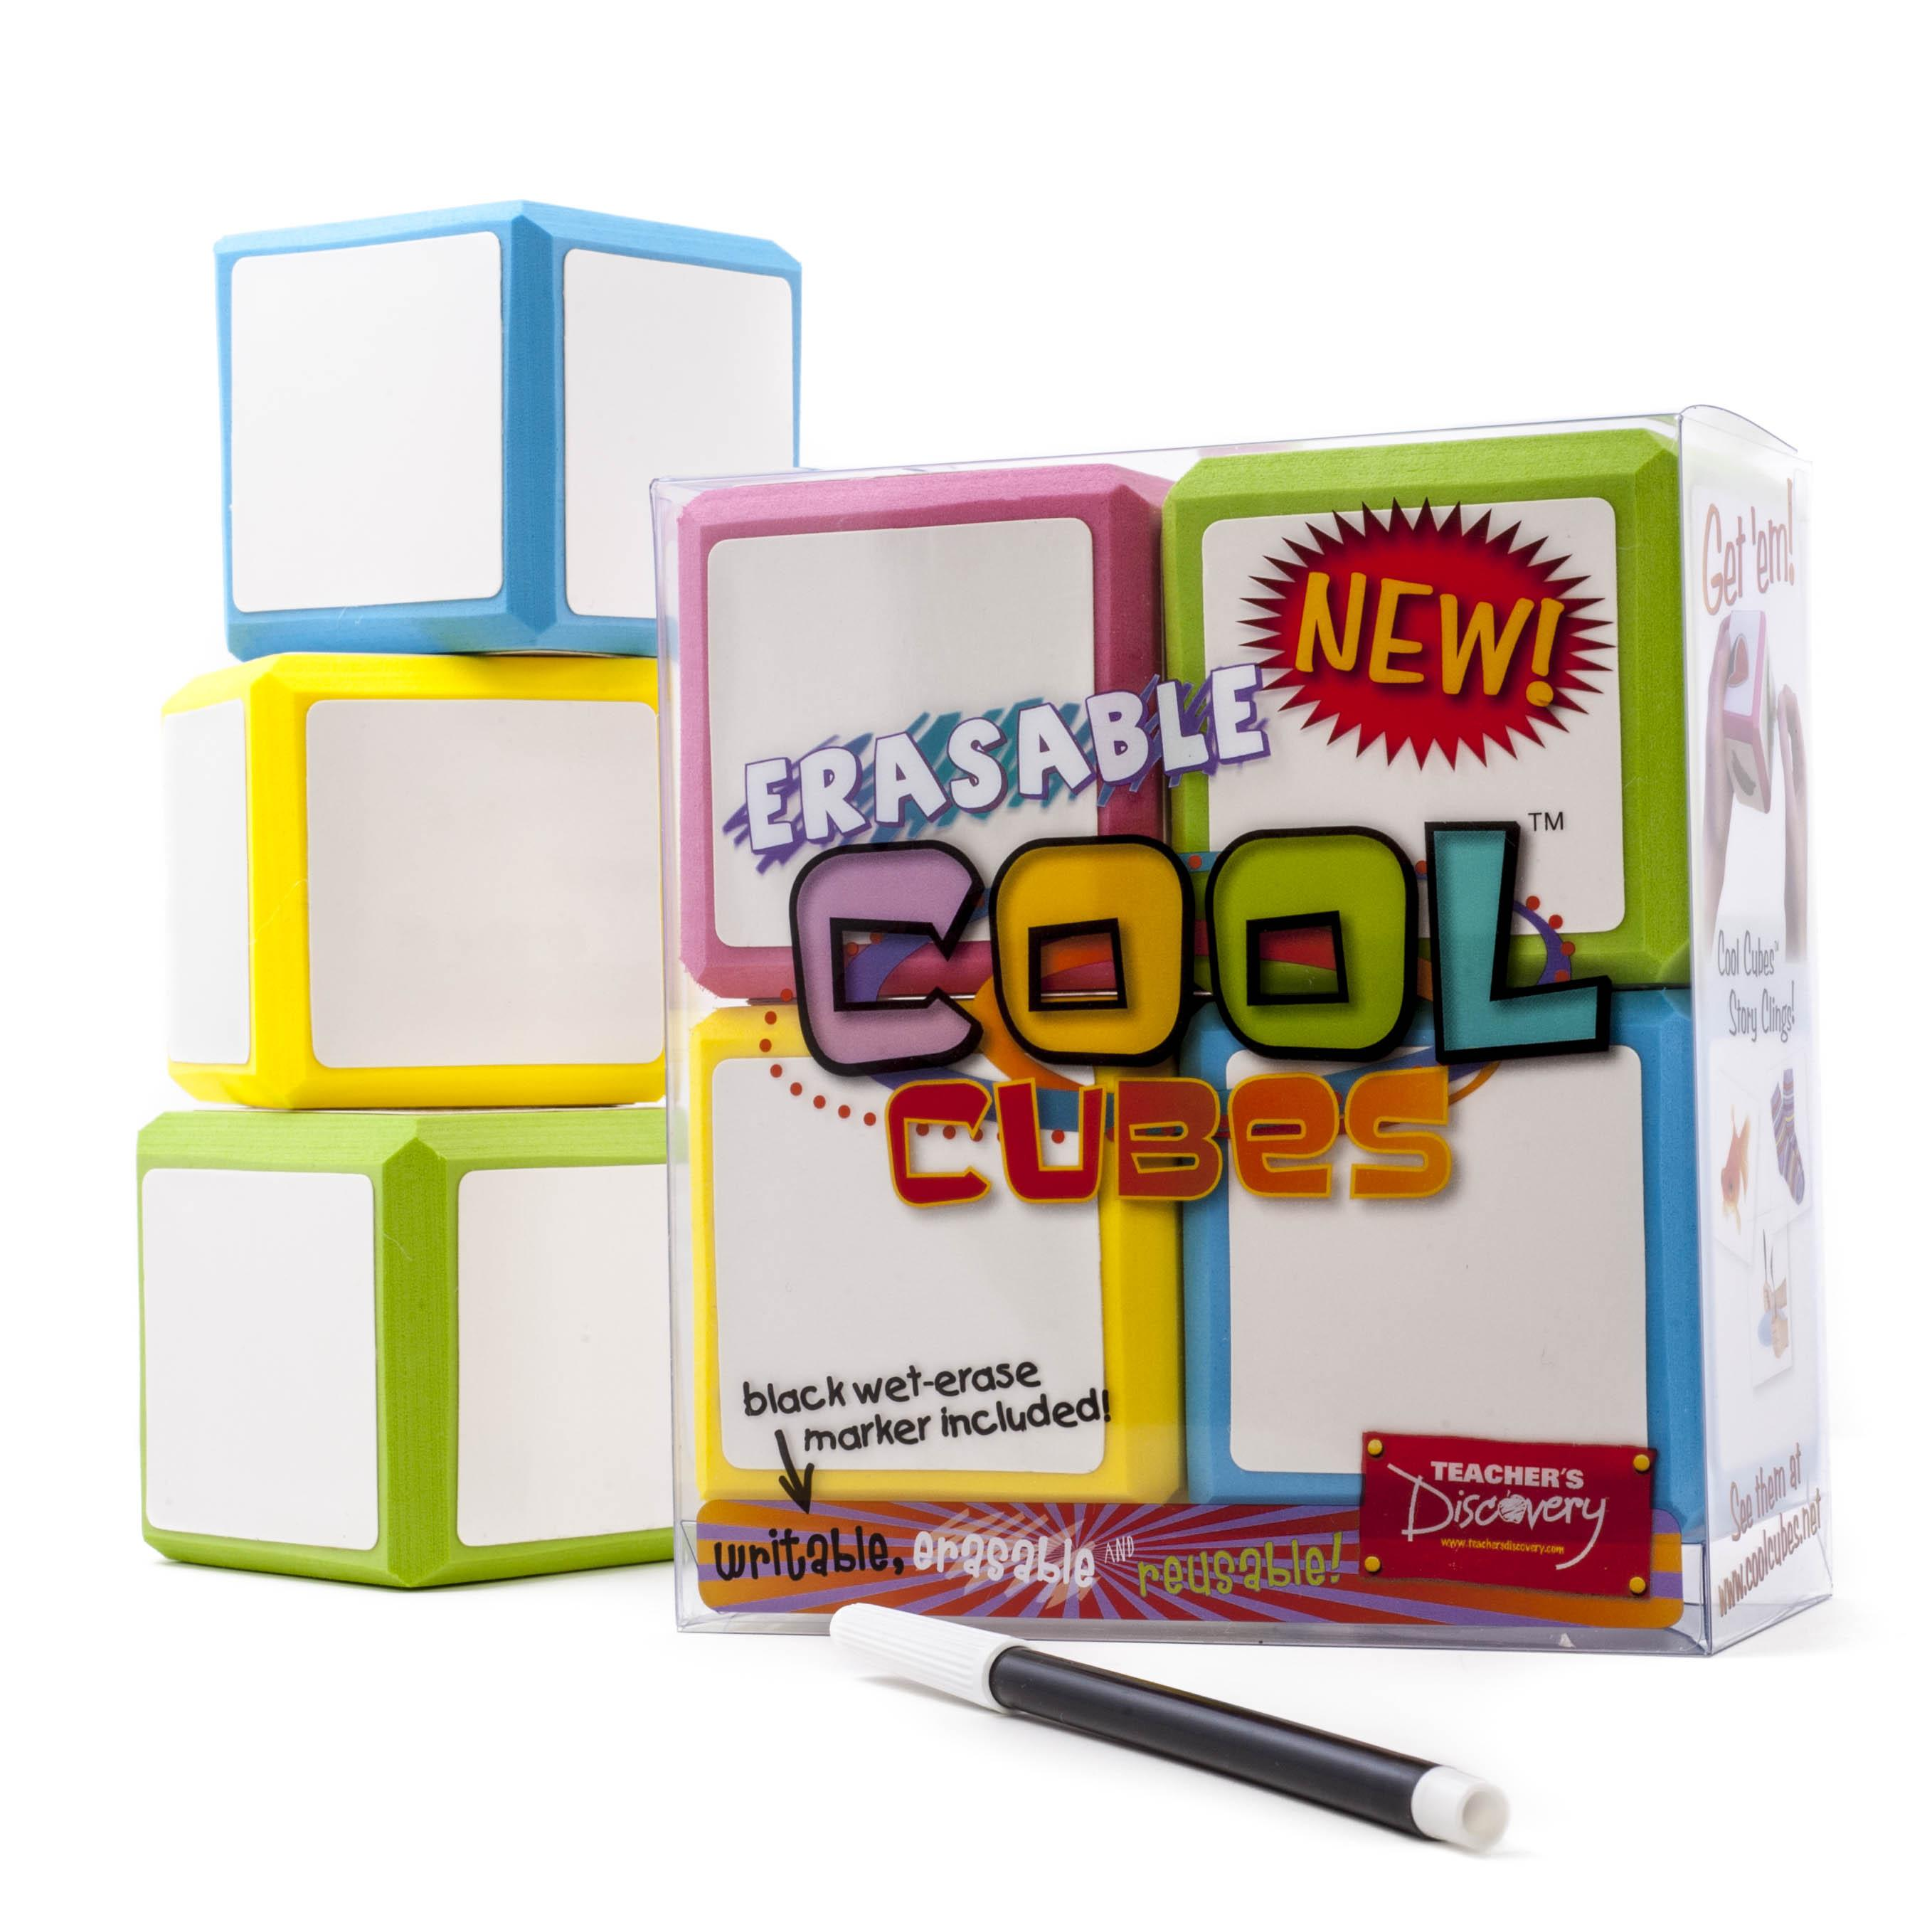 Erasable Cool Cubes 1 Set